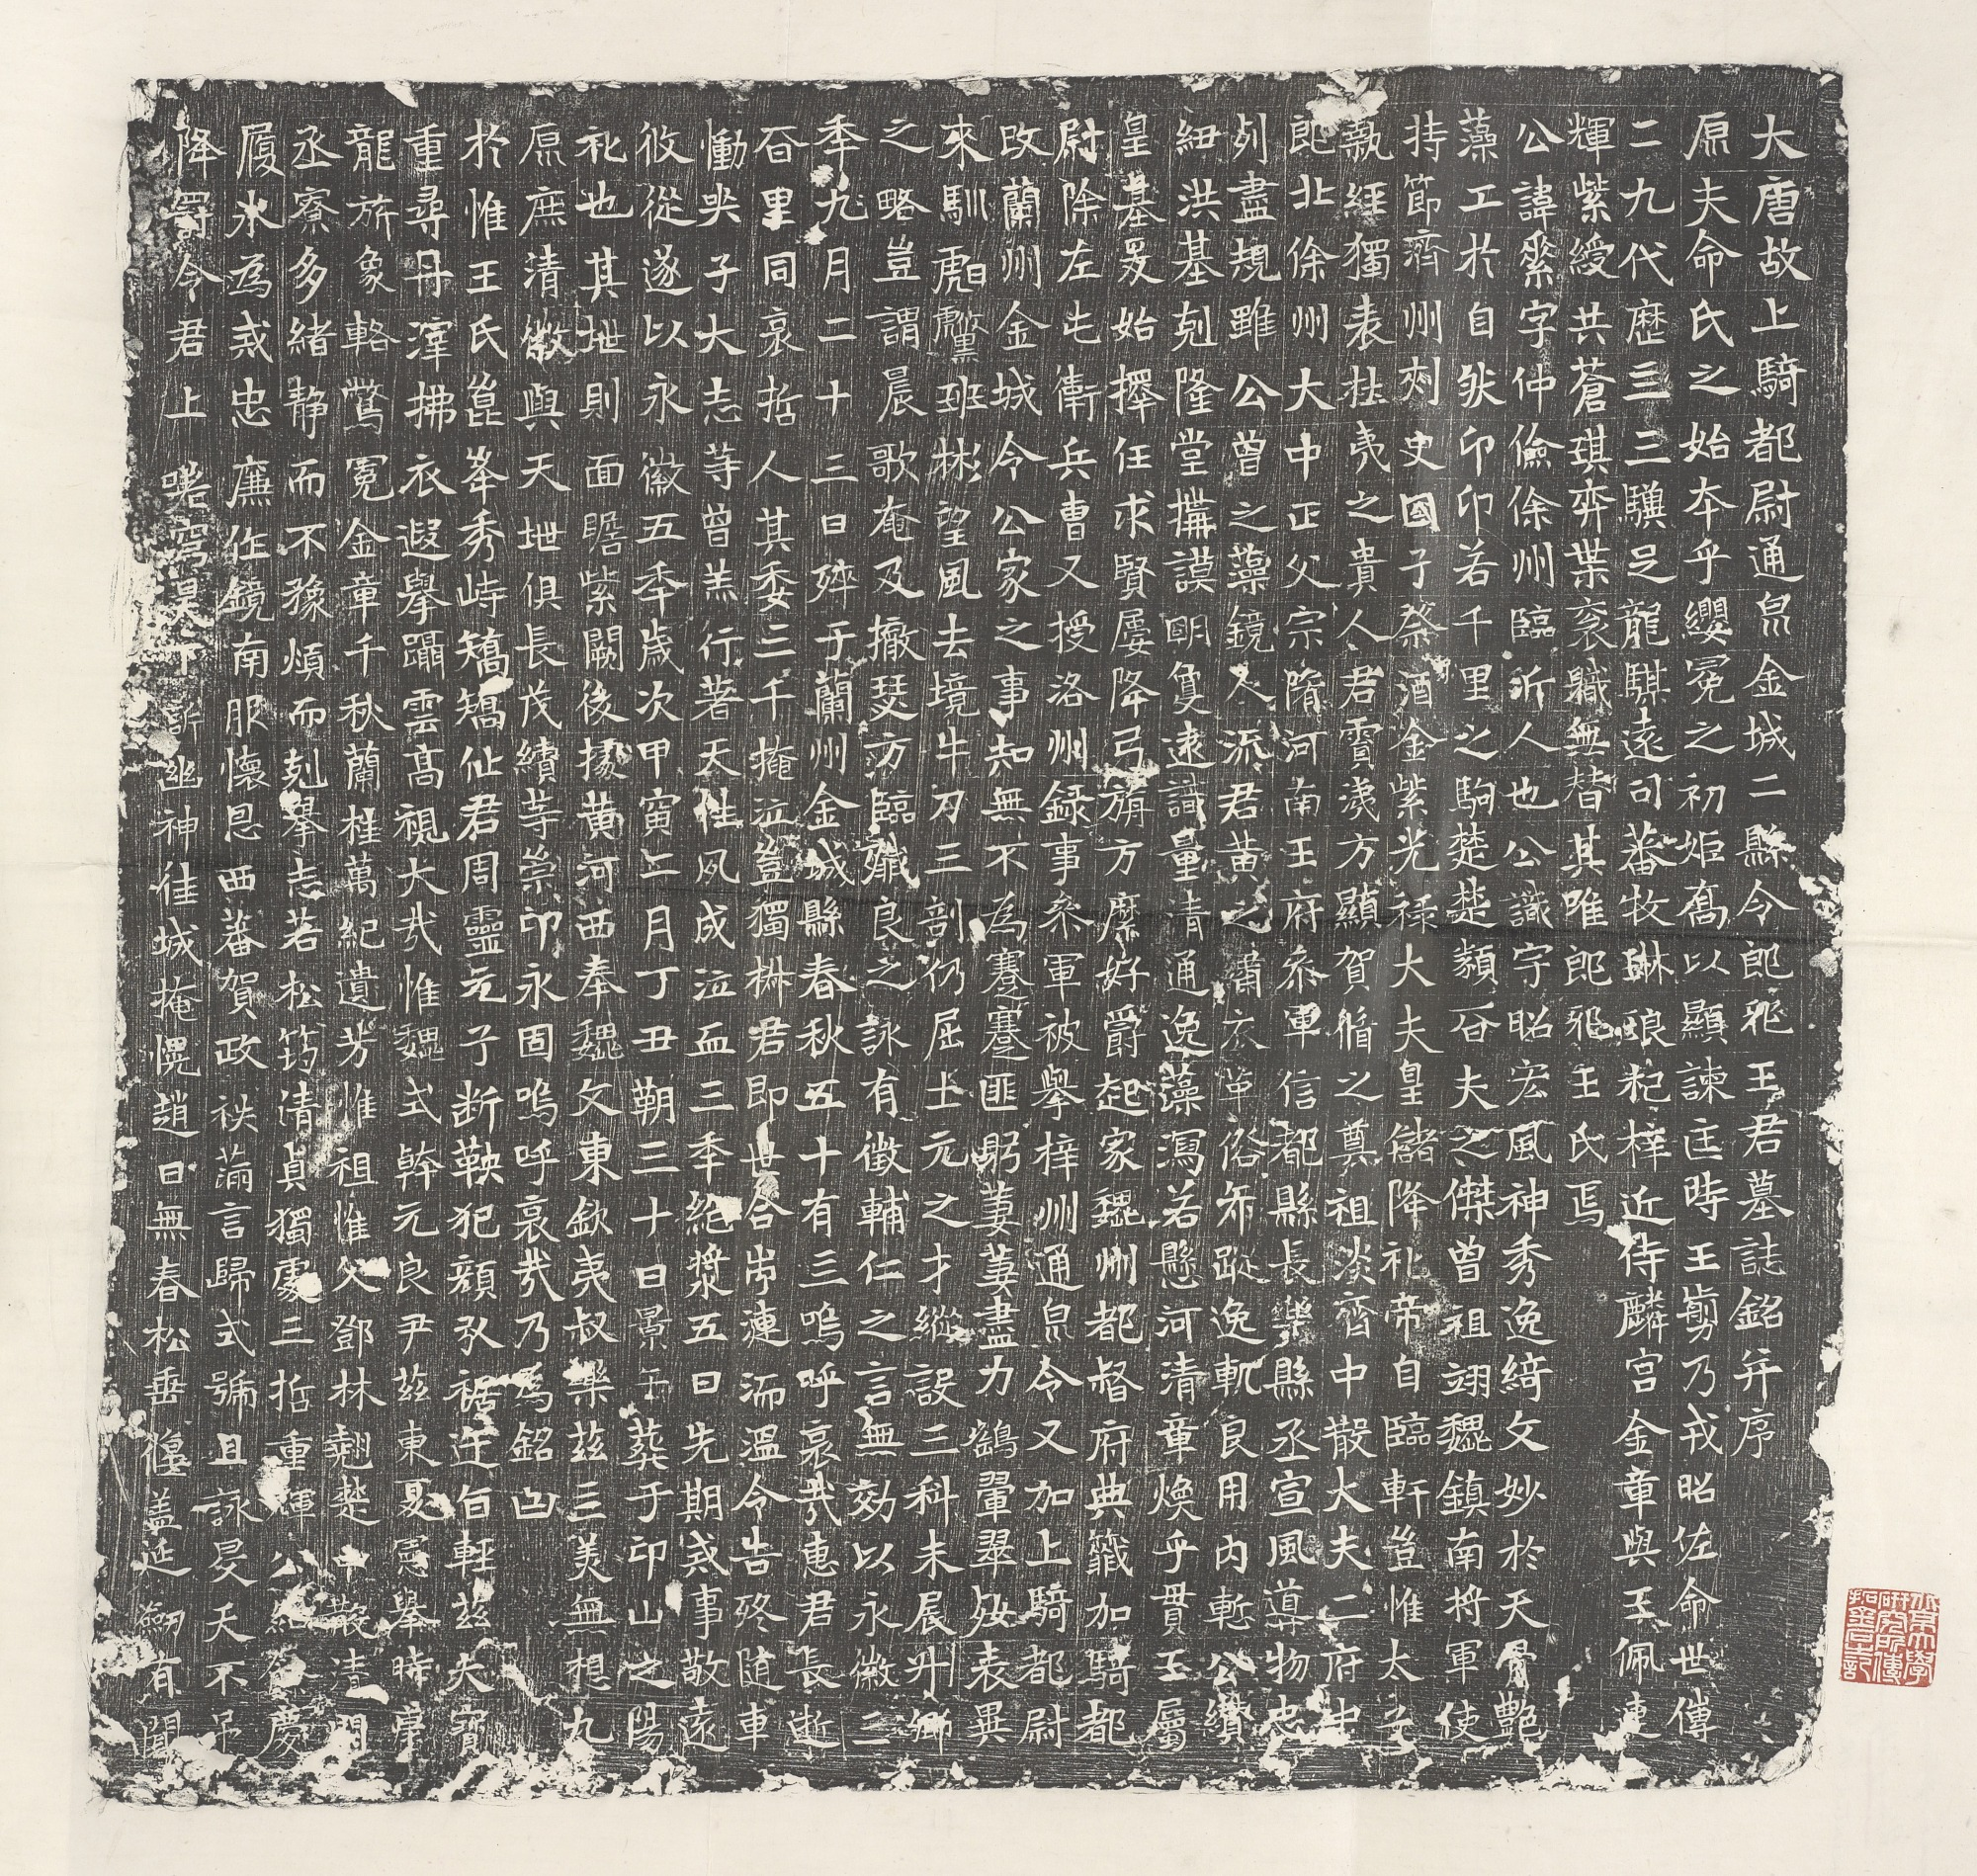 Epitaph of Wang Su in standard script